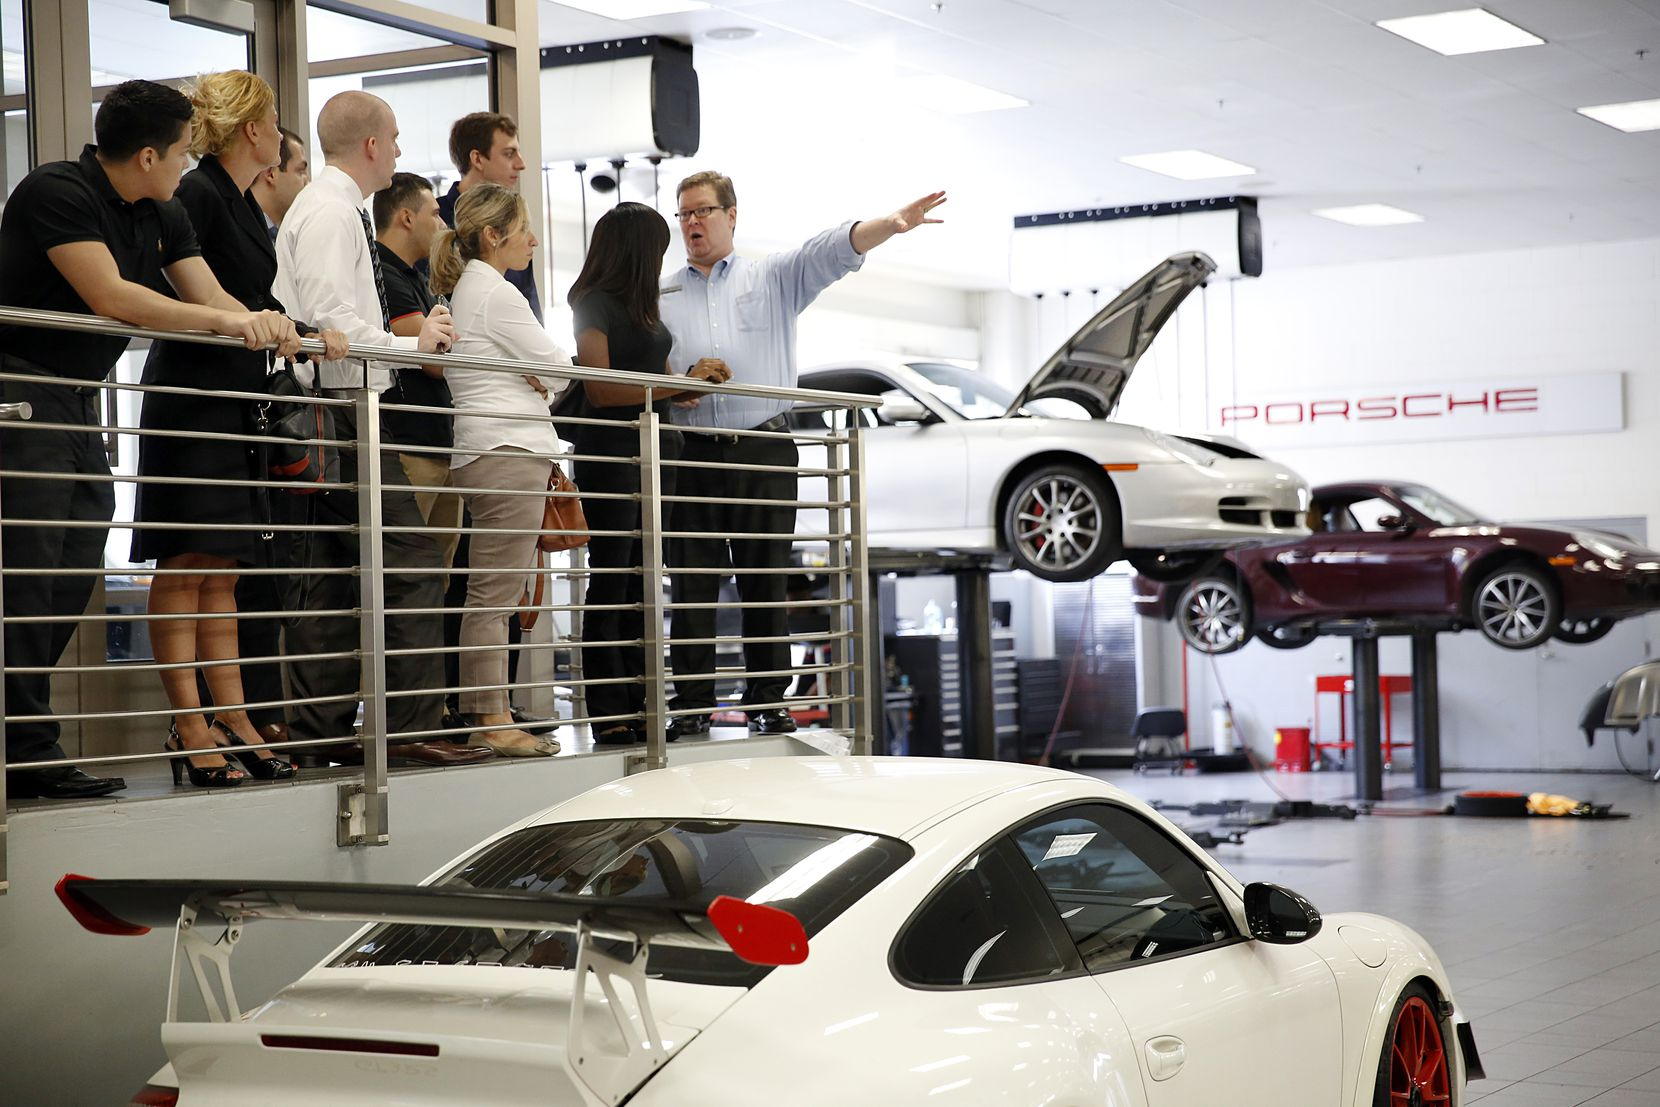 Training manager Patrick Gardner (right) leads a group of new employees on a tour of the Park Place Dealerships, including the Porsche service center, in Dallas, Thursday, August 21, 2014.  (Tom Fox/The Dallas Morning News)